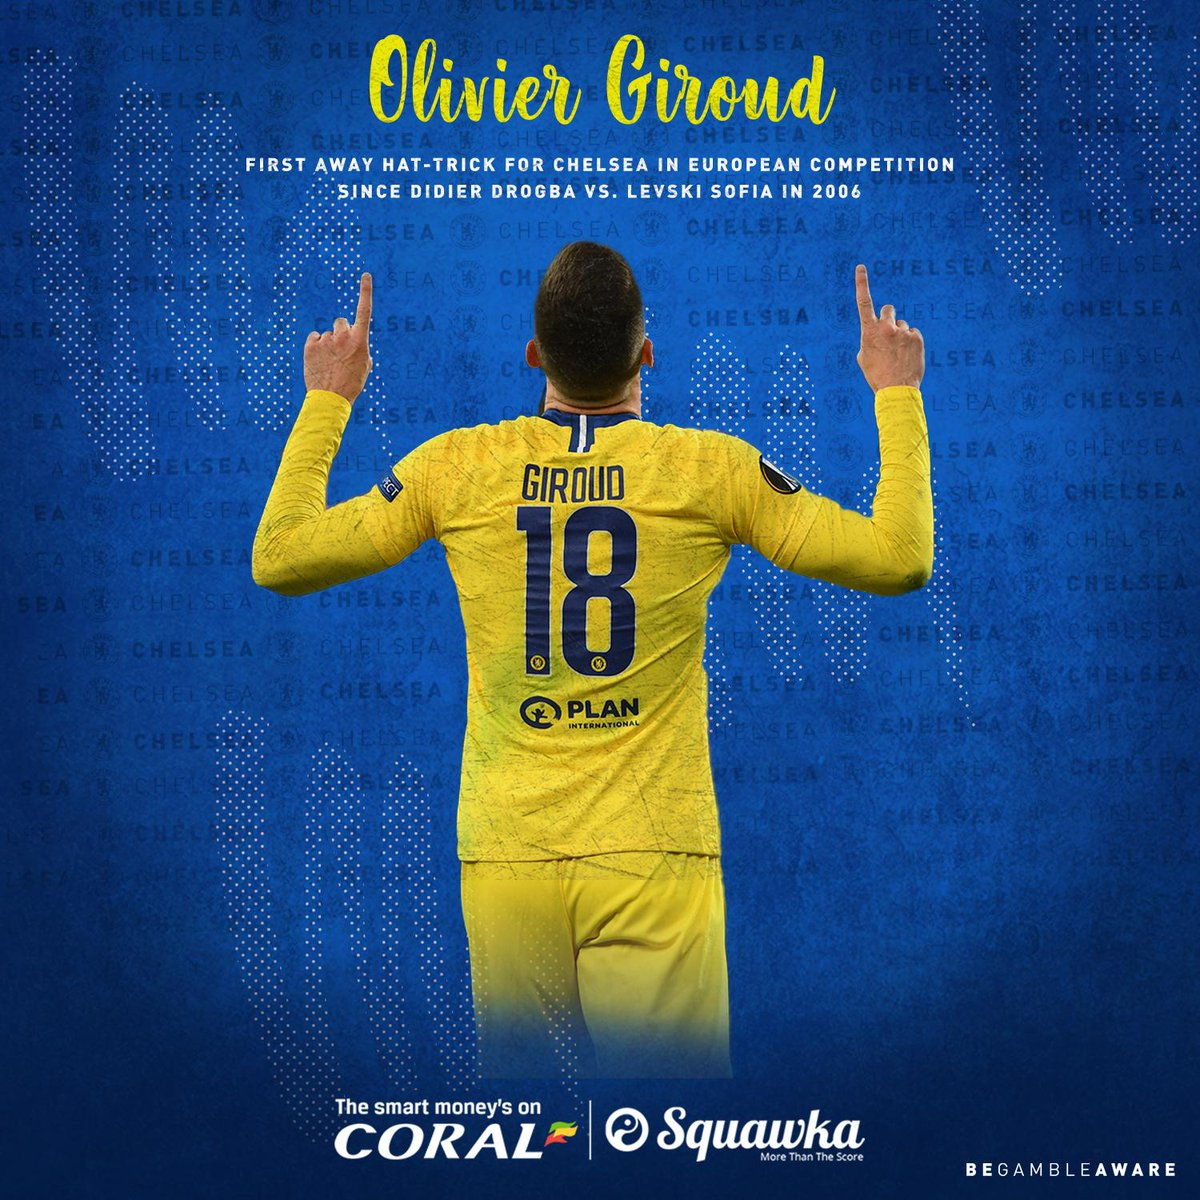 Coral's photo on Olivier Giroud